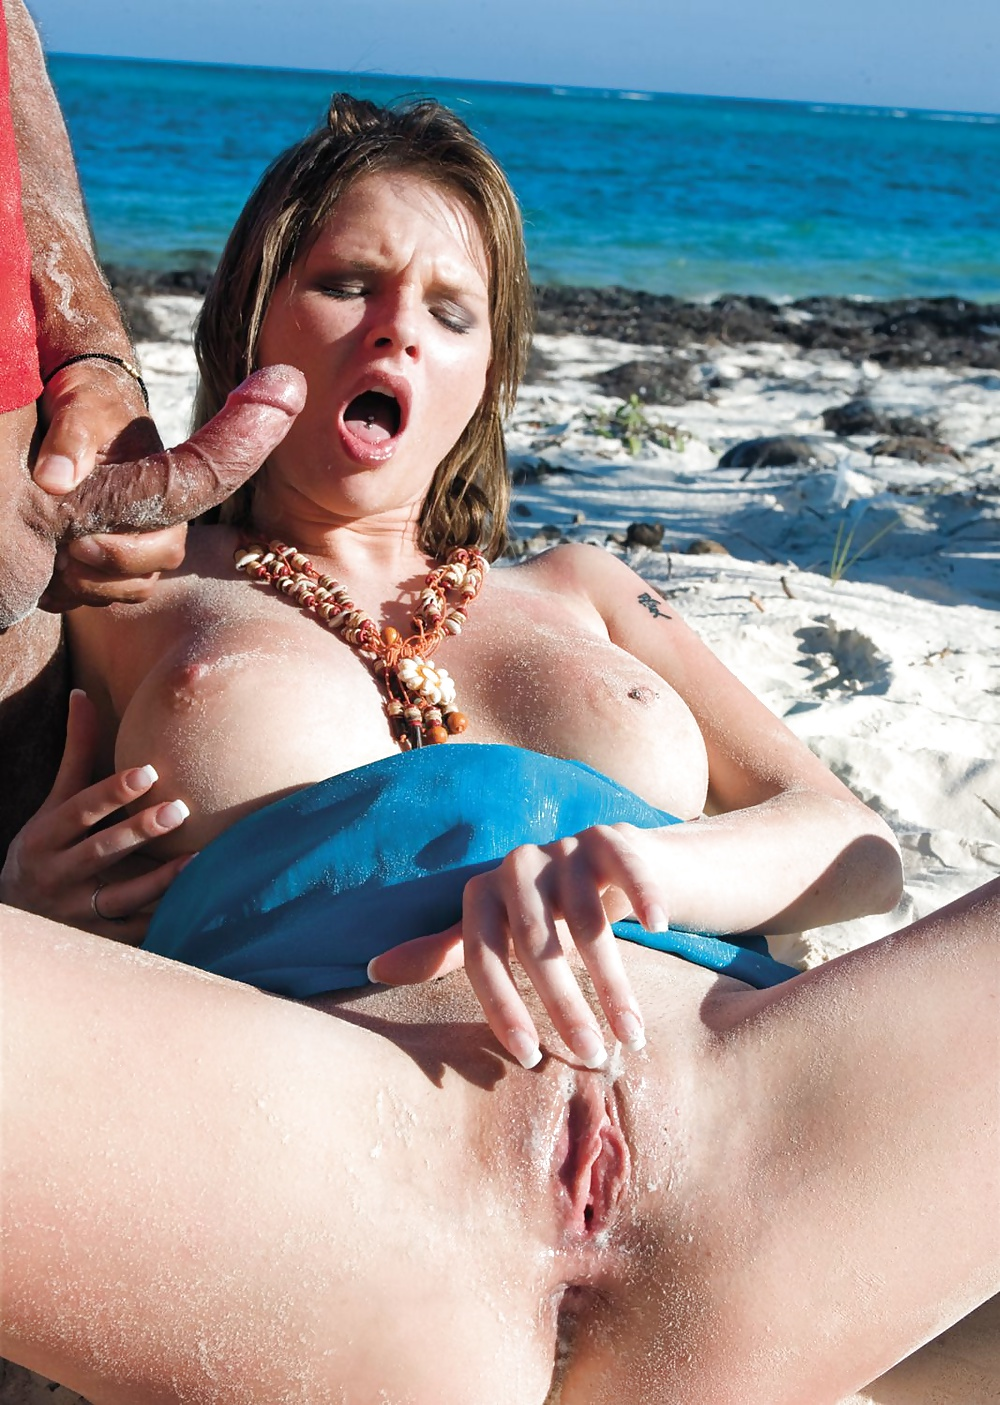 Girl with beach hardcore porn creamp pie eating